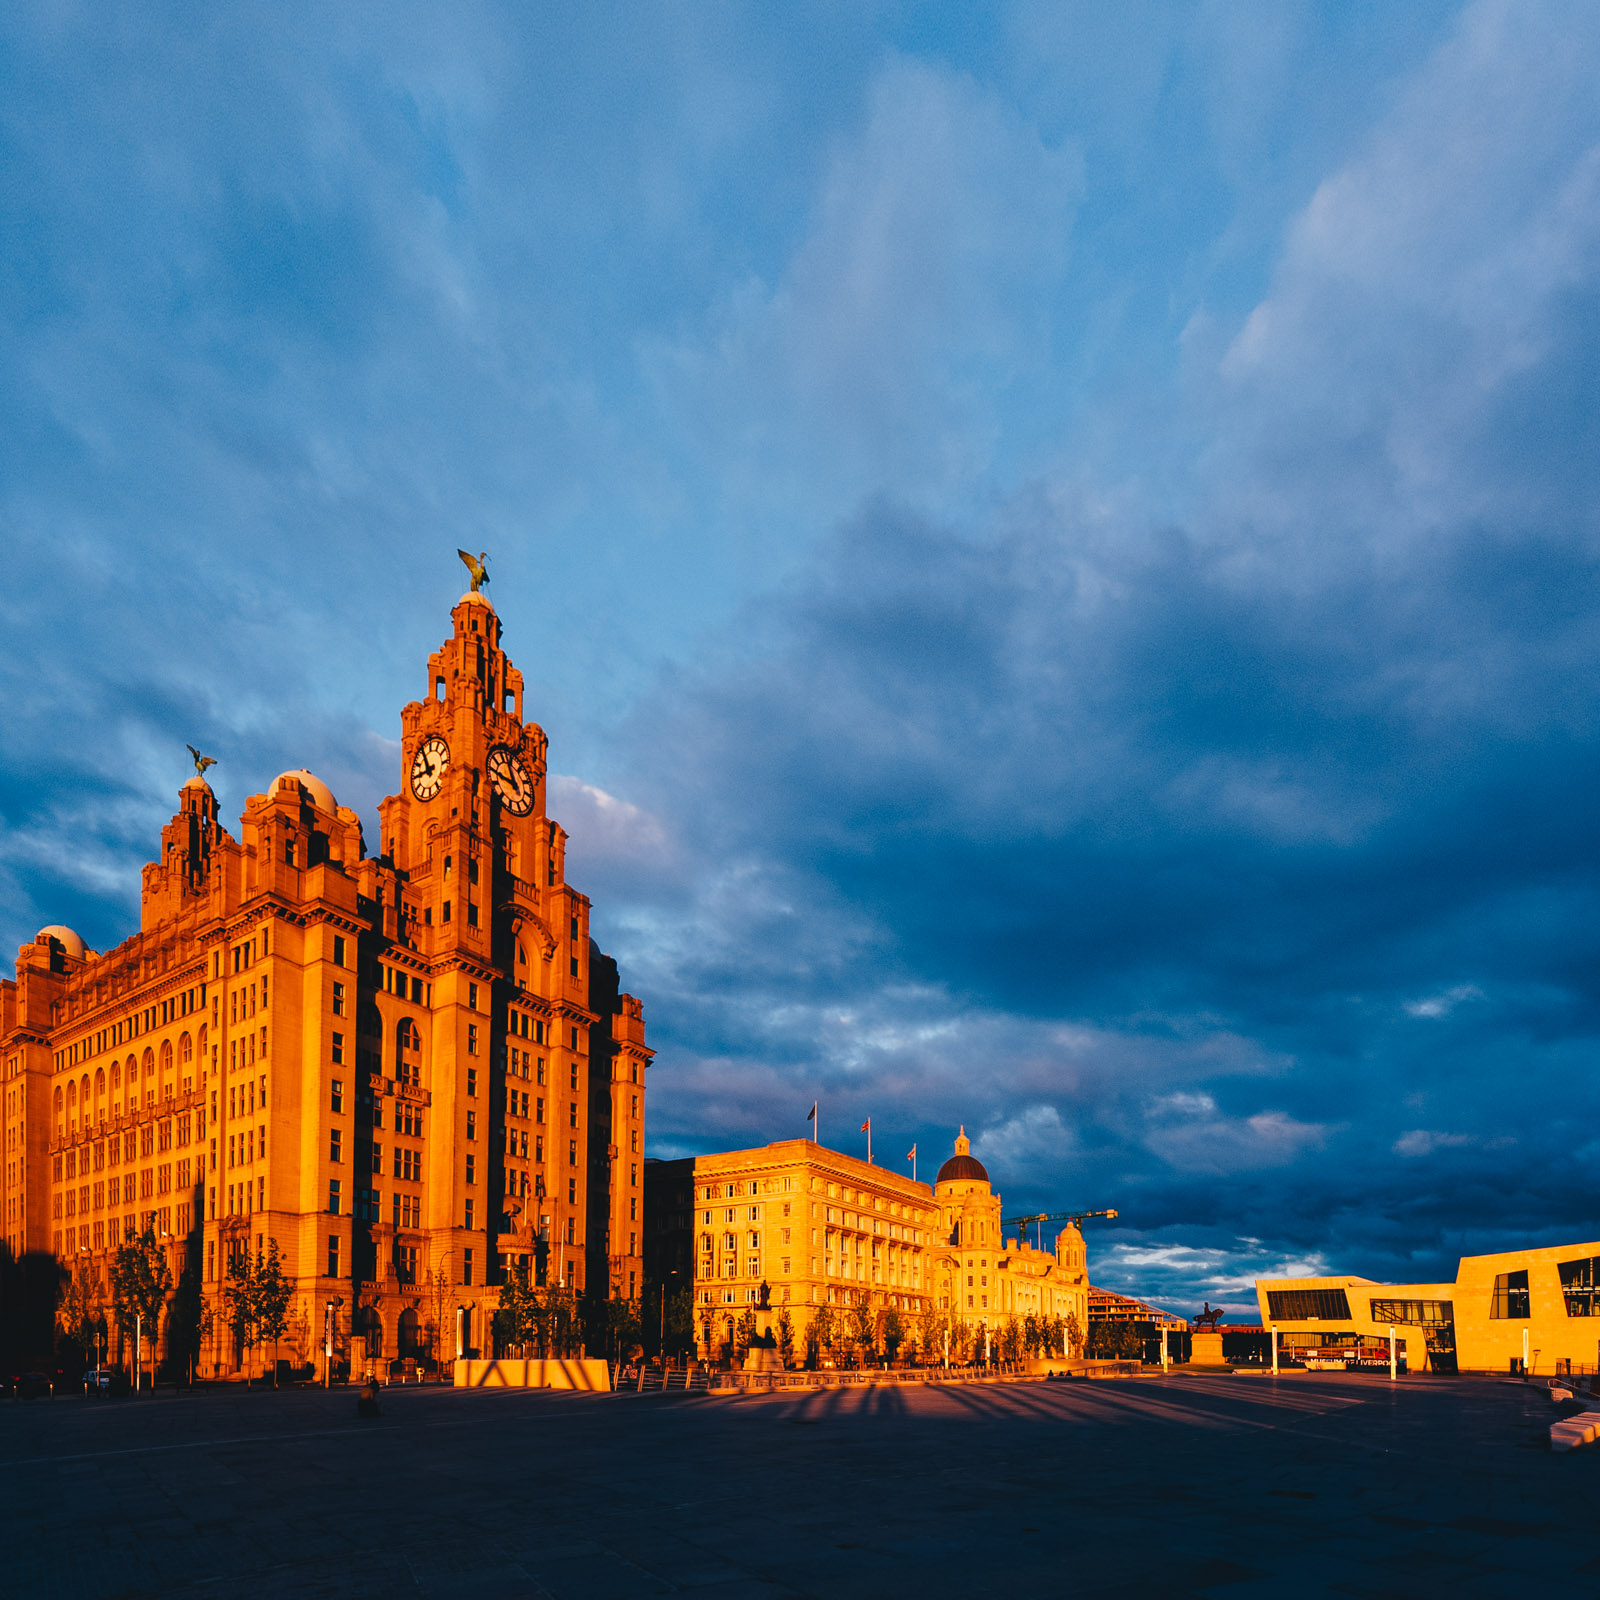 Sunset in Liverpool